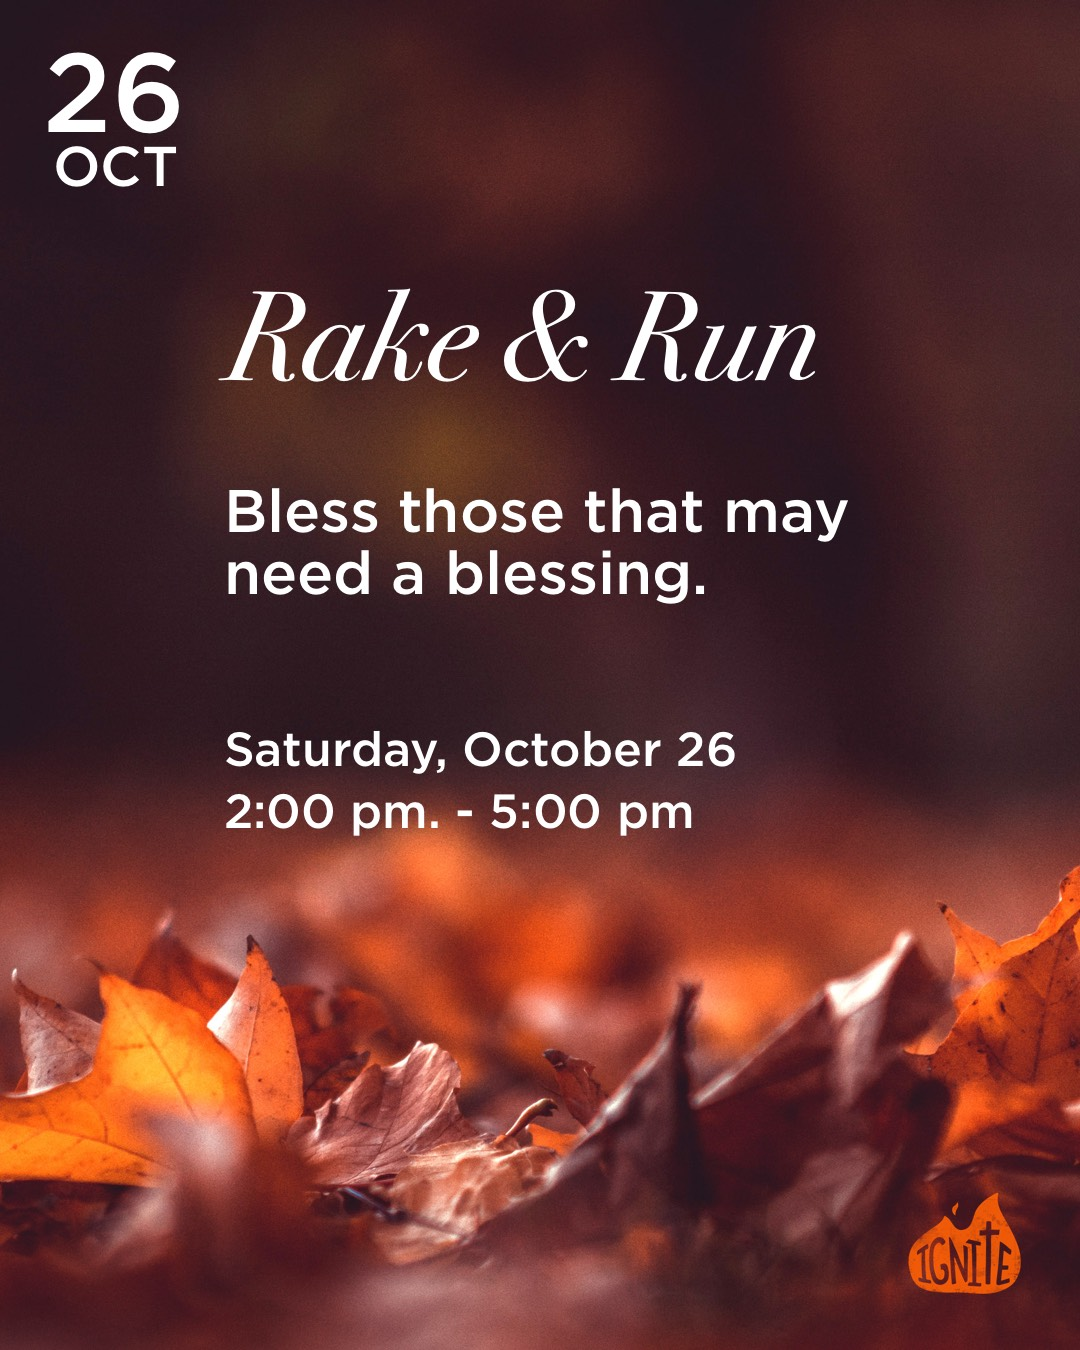 Rake & Run: Bless this that may need a small blessing. Saturday, October 26, 2pm-5pm